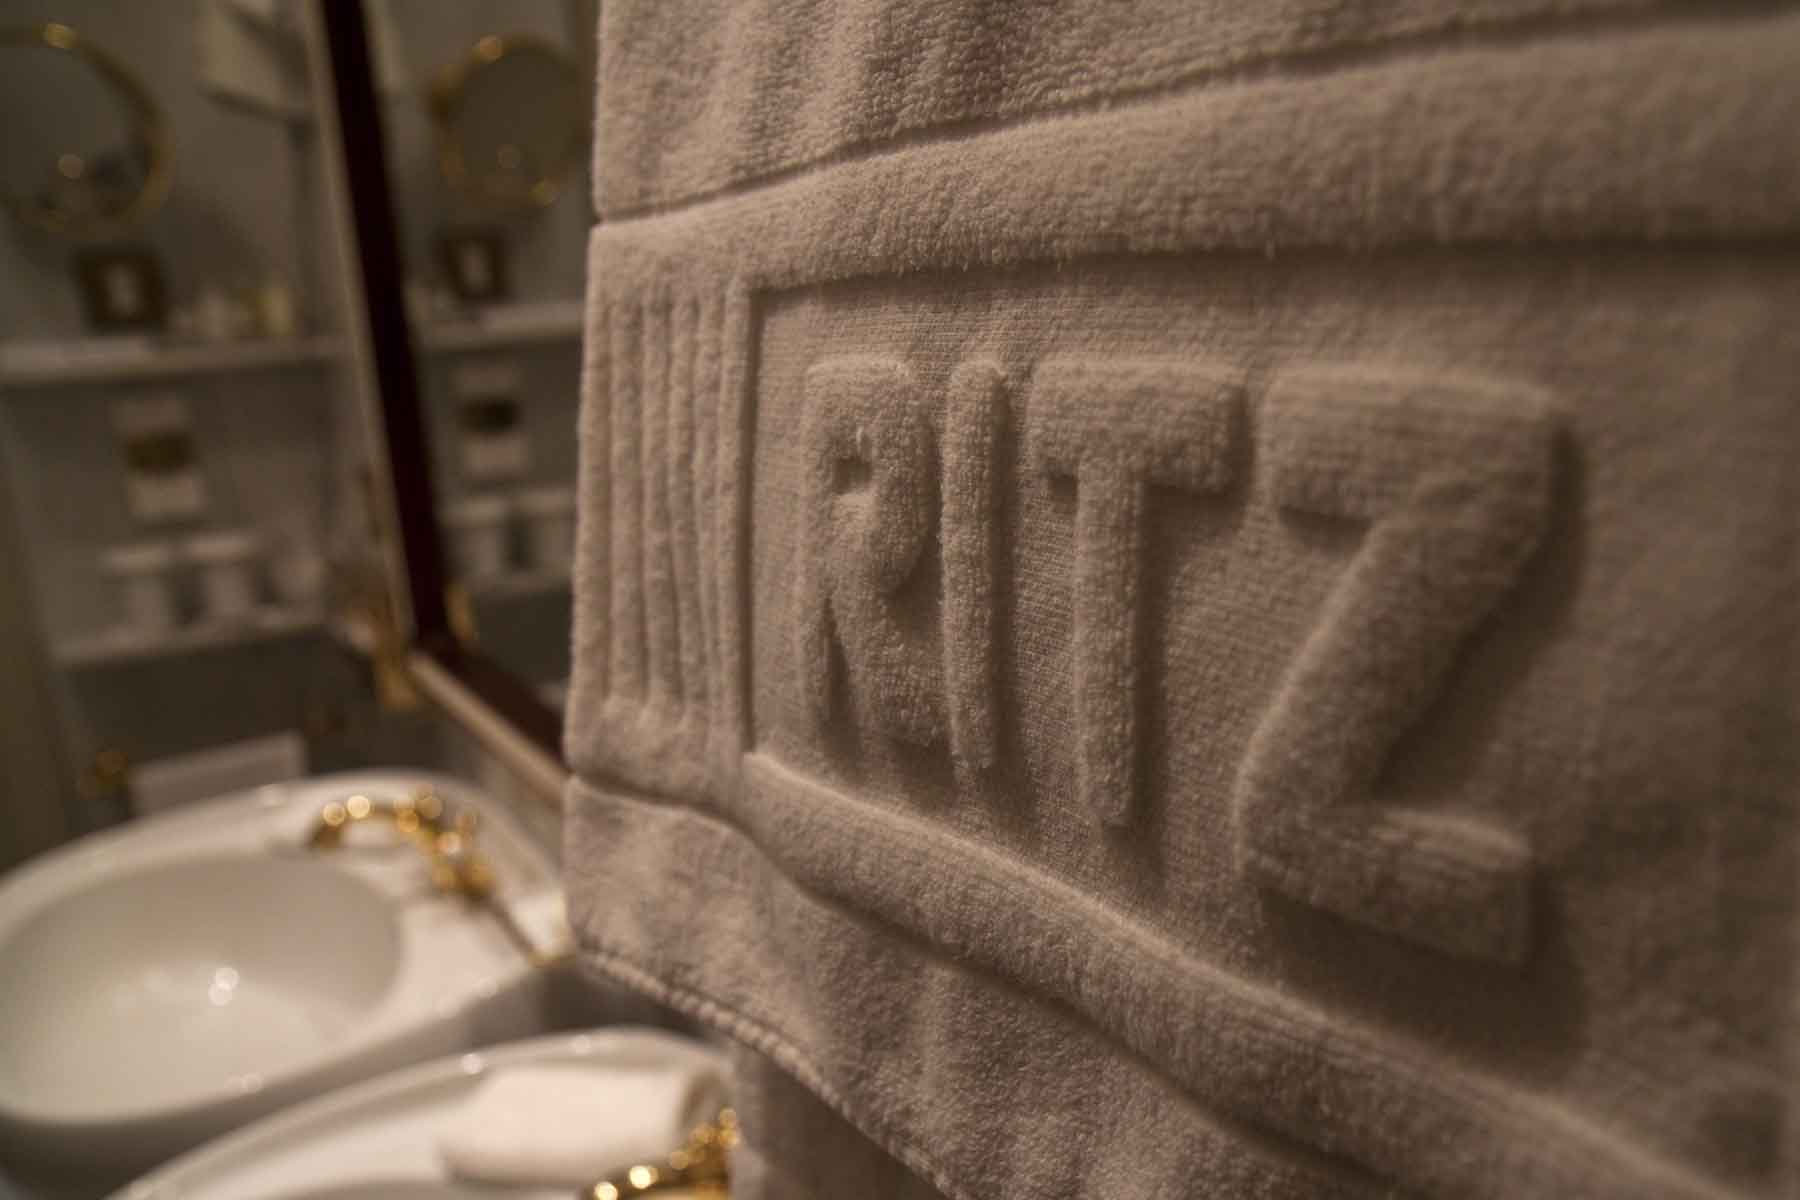 The mighty Ritz name is throughout the hotel